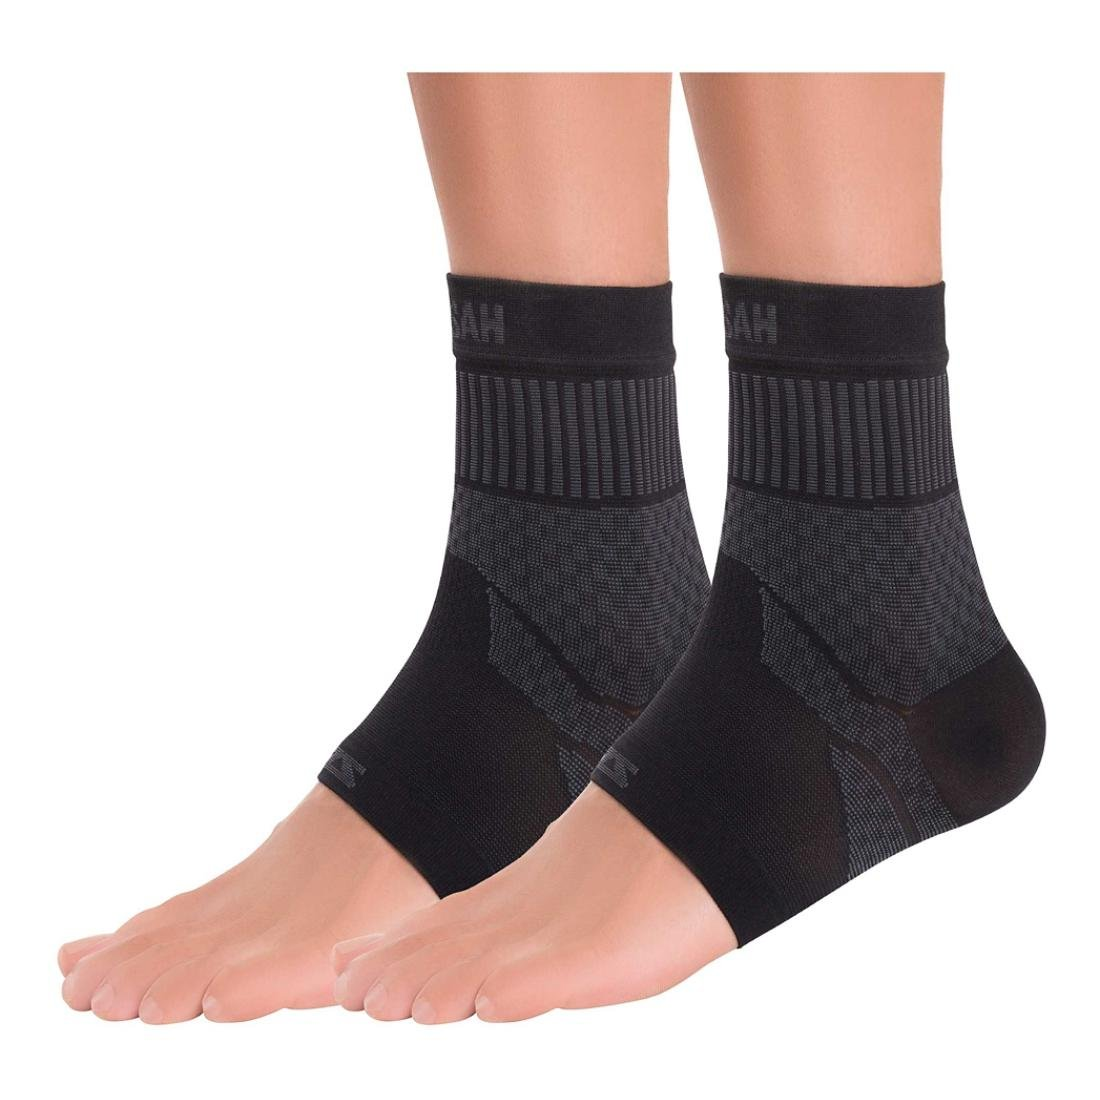 Zensah Ankle Support - Compression Ankle Brace - Great for Running, Soccer, Volleyball, Sports - Ankle Sleeve Helps Sprains, Tendonitis, Pain, Black, Small, Pair